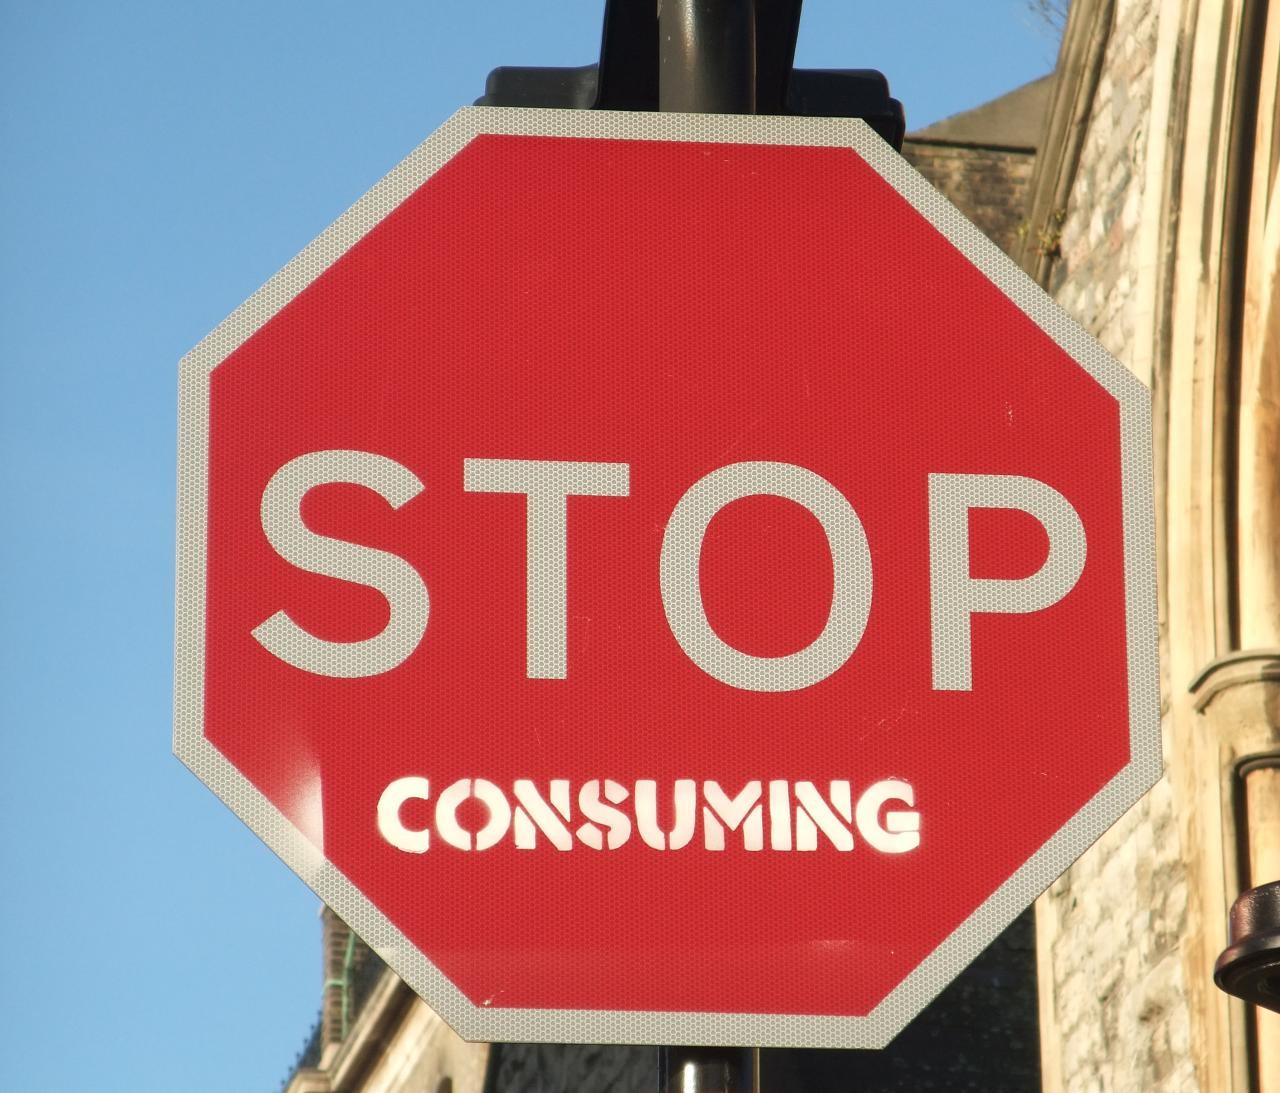 Stop sign with the word 'consuming' added to it, so that it reads 'STOP consuming'